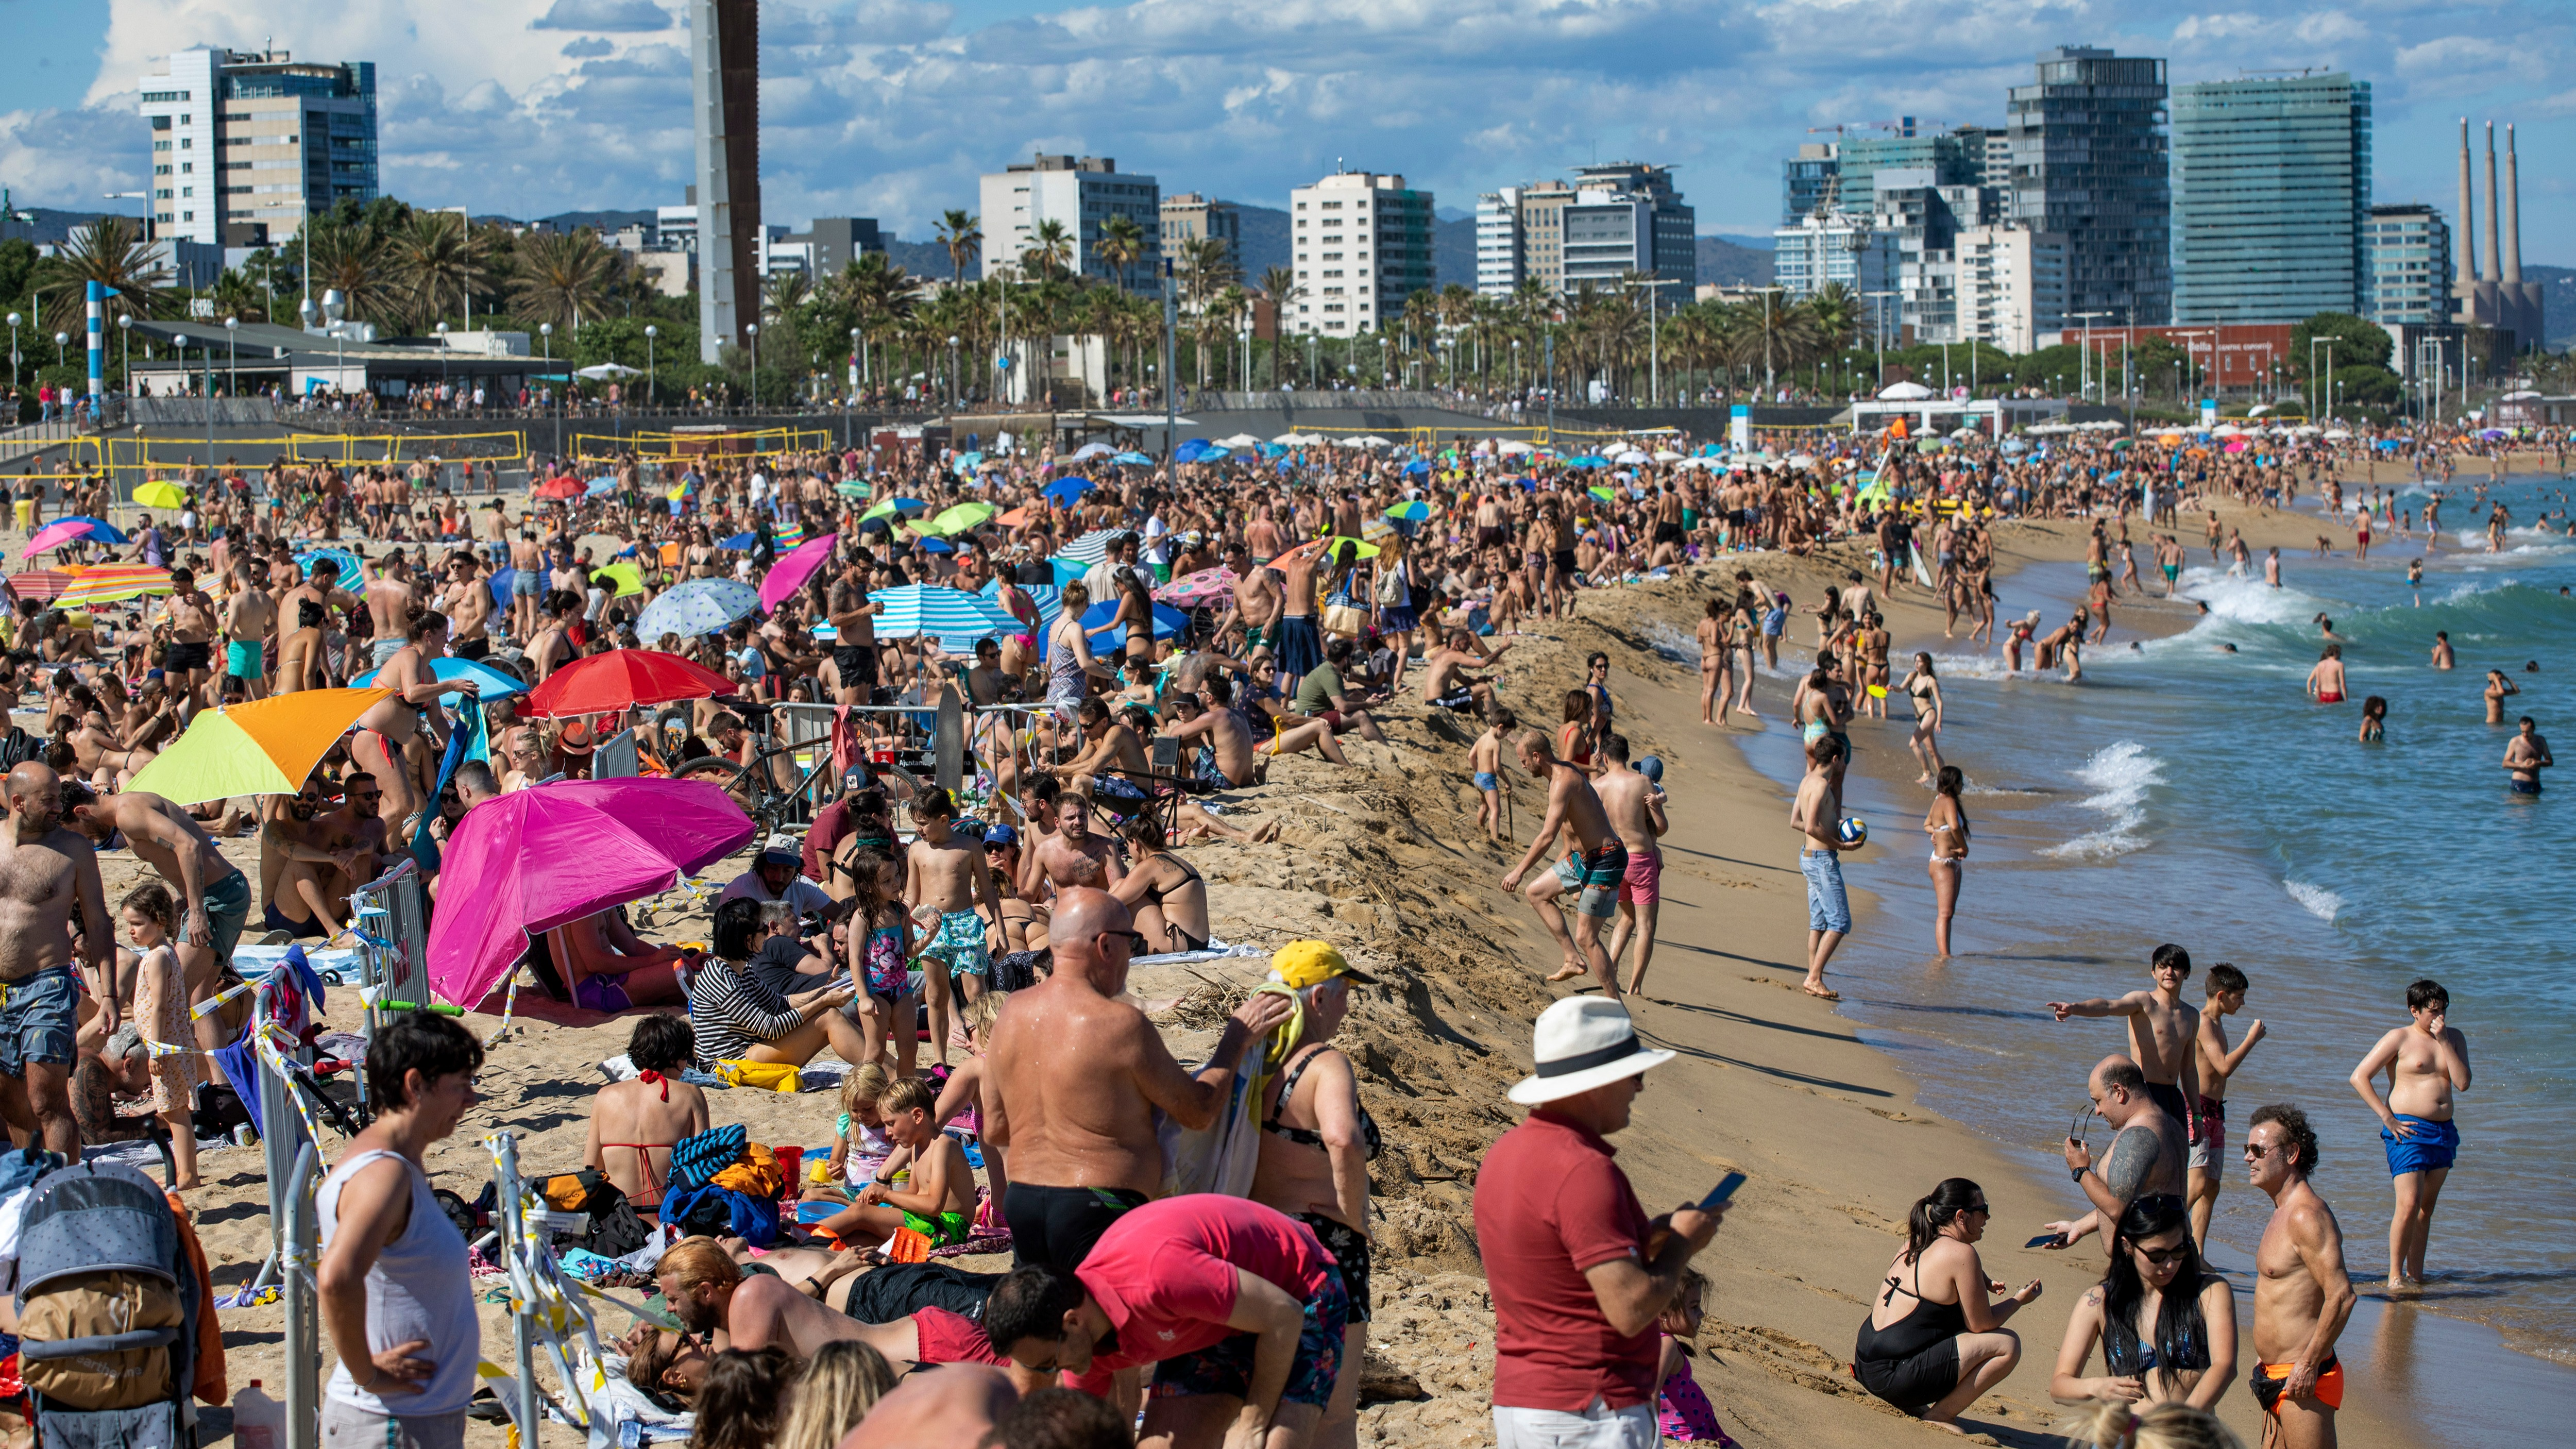 Fines Of Up To 13 500 For Drinking Alcohol Outside In Barcelona Amid Spike In Spain Coronavirus Cases Itv News